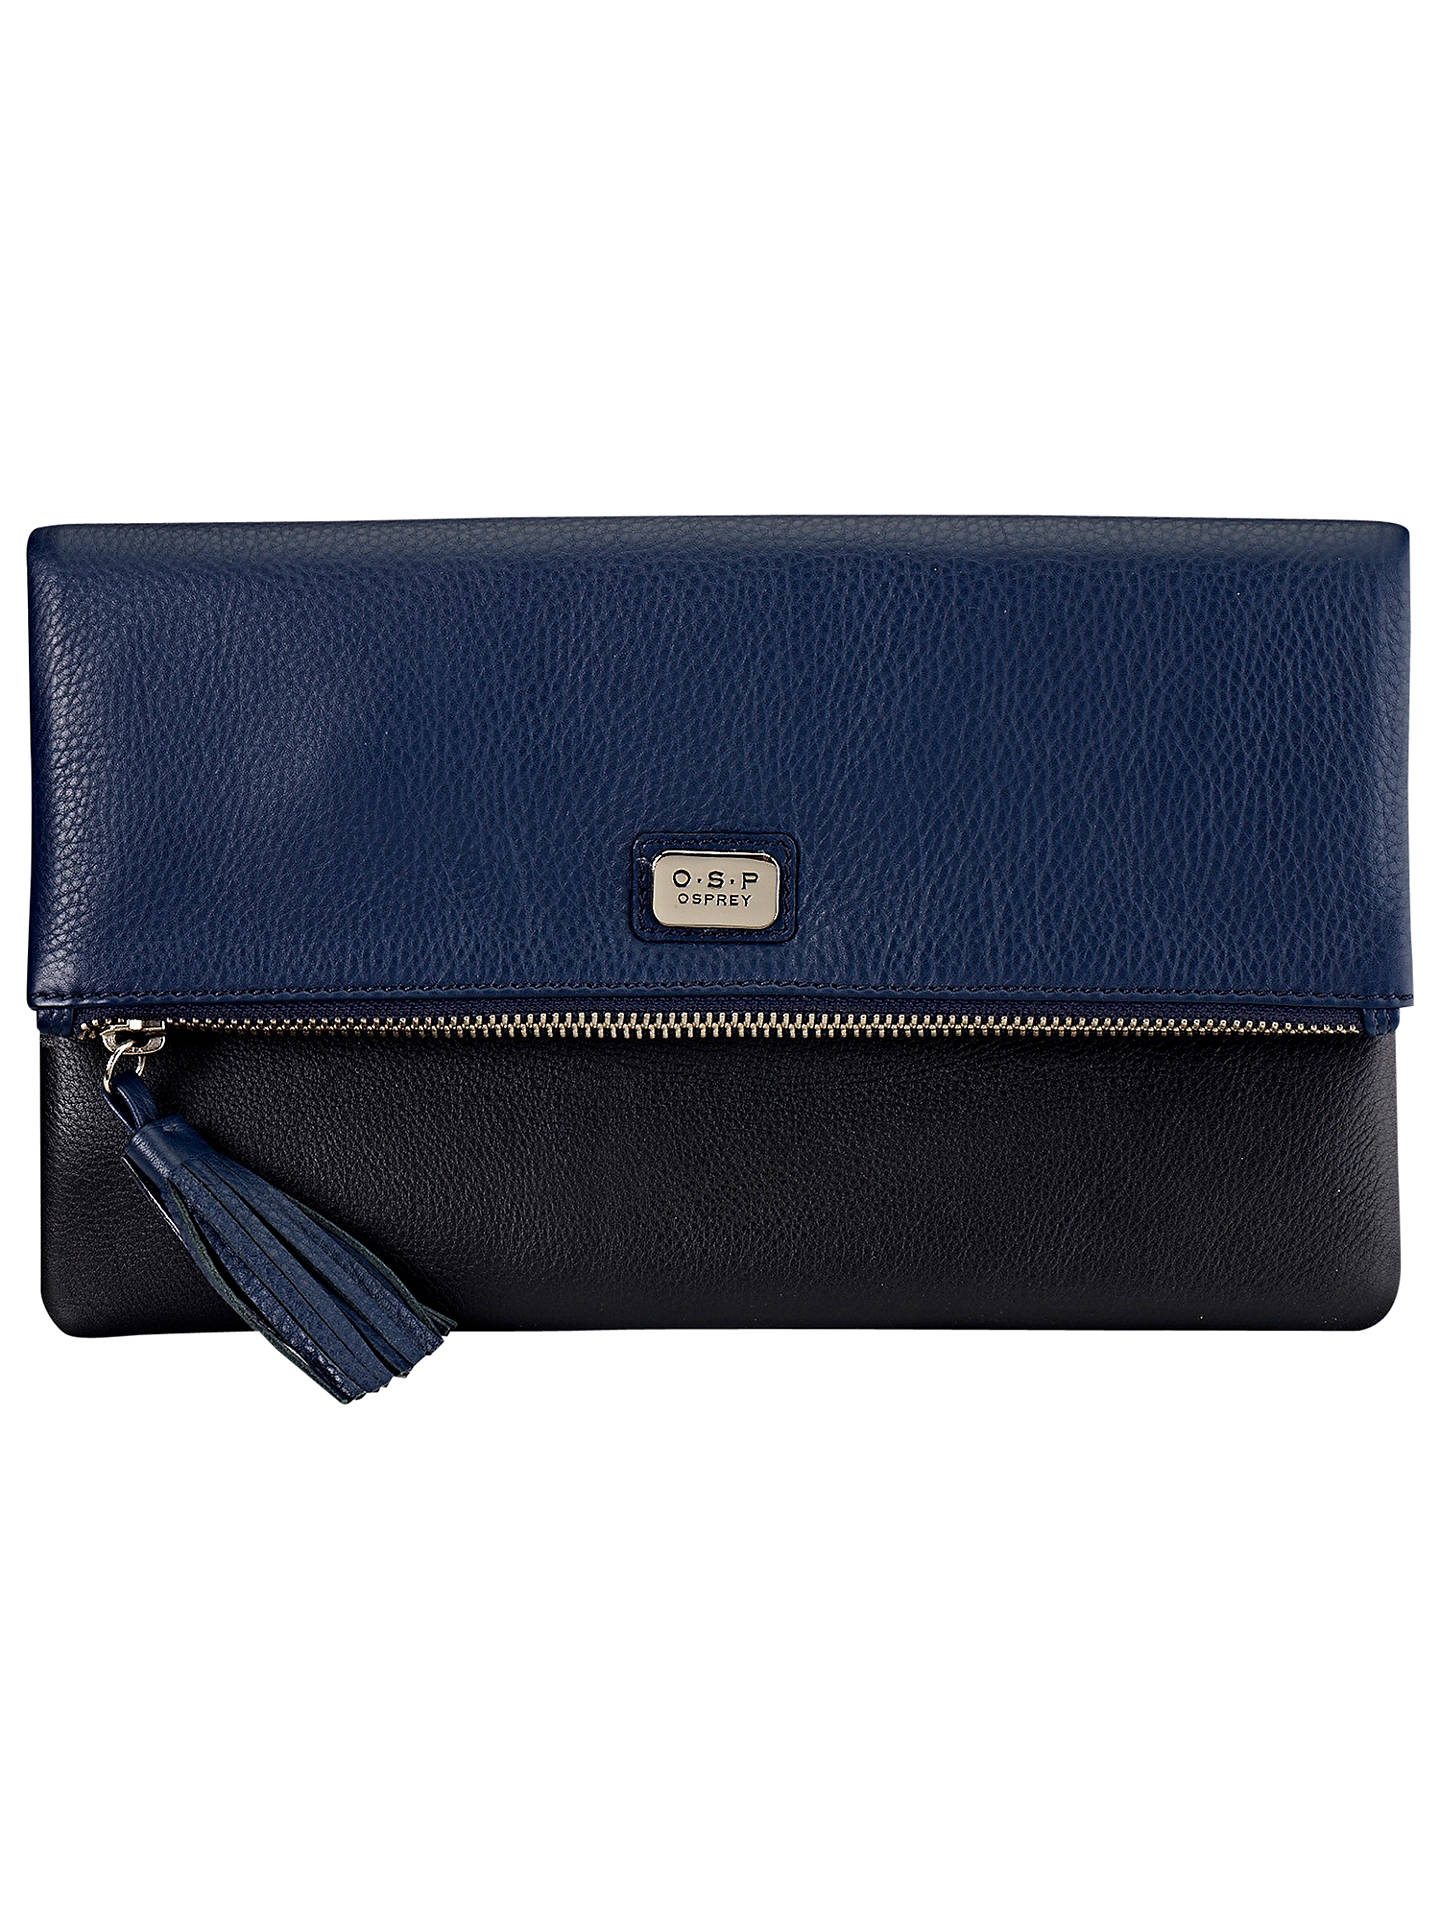 S P Osprey Na Leather Foldover Clutch Bag Navy Online At Johnlewis